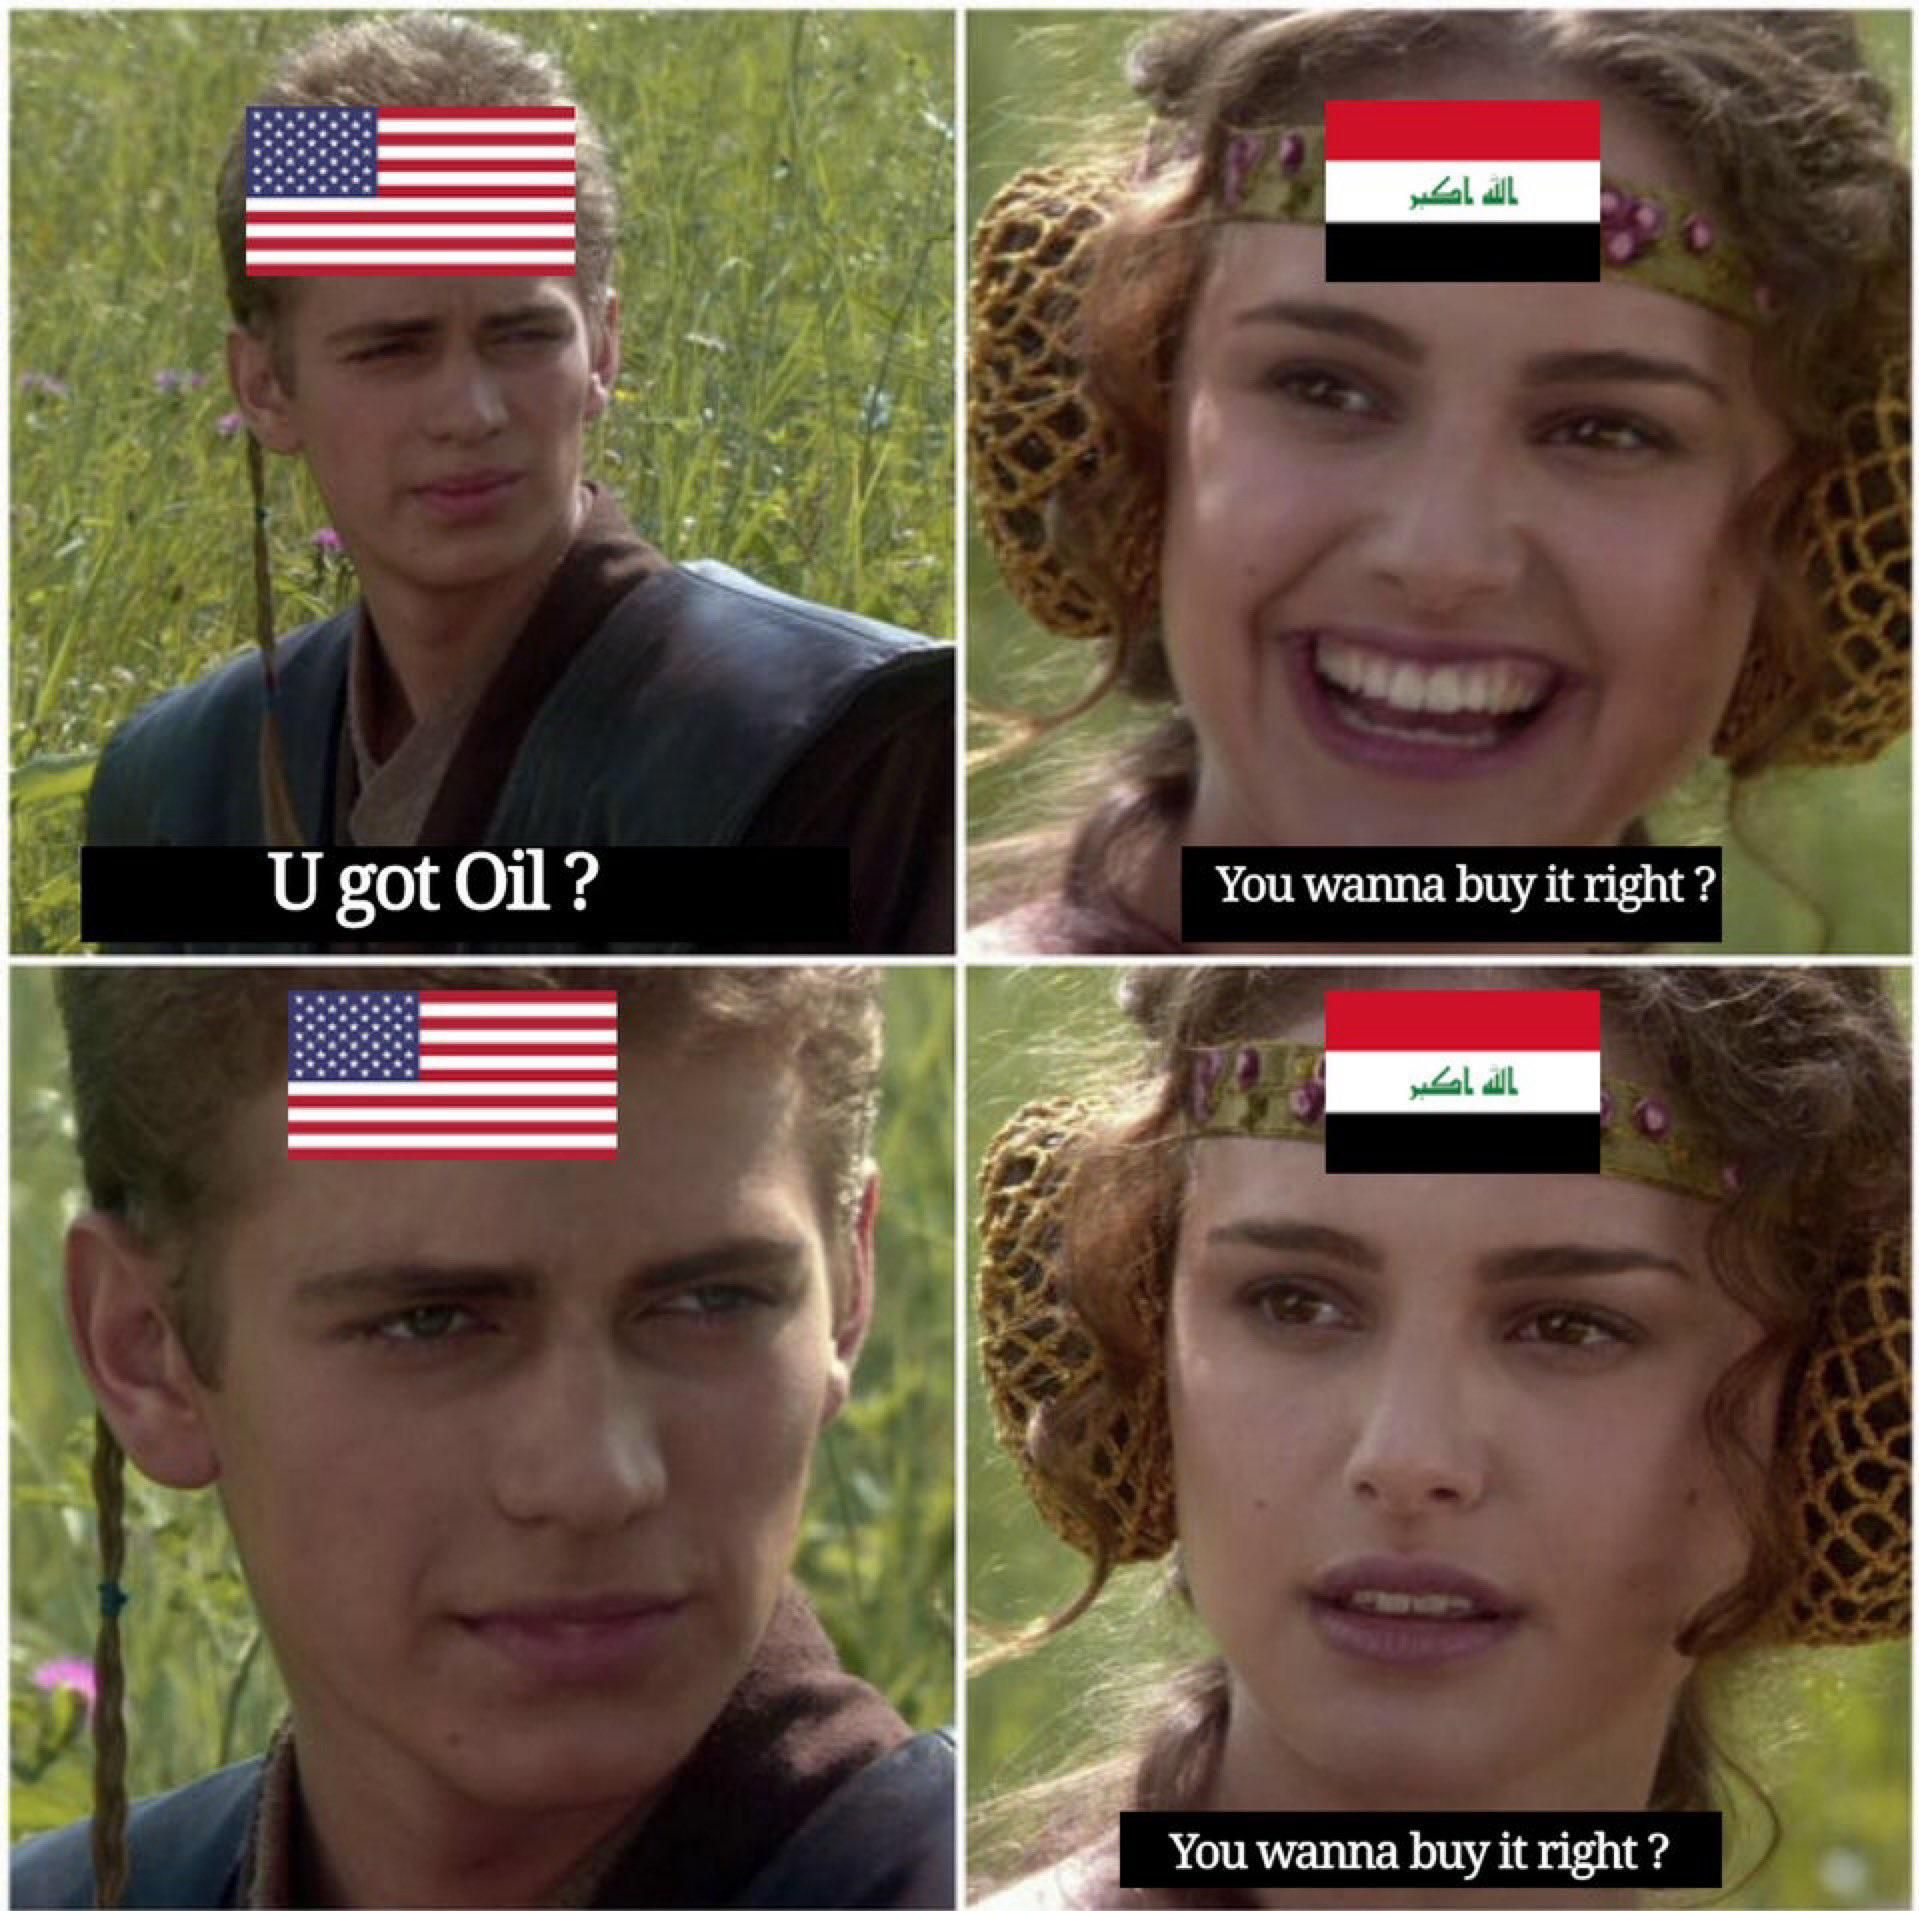 They just want to exchange their great democracy with our oil peacefully